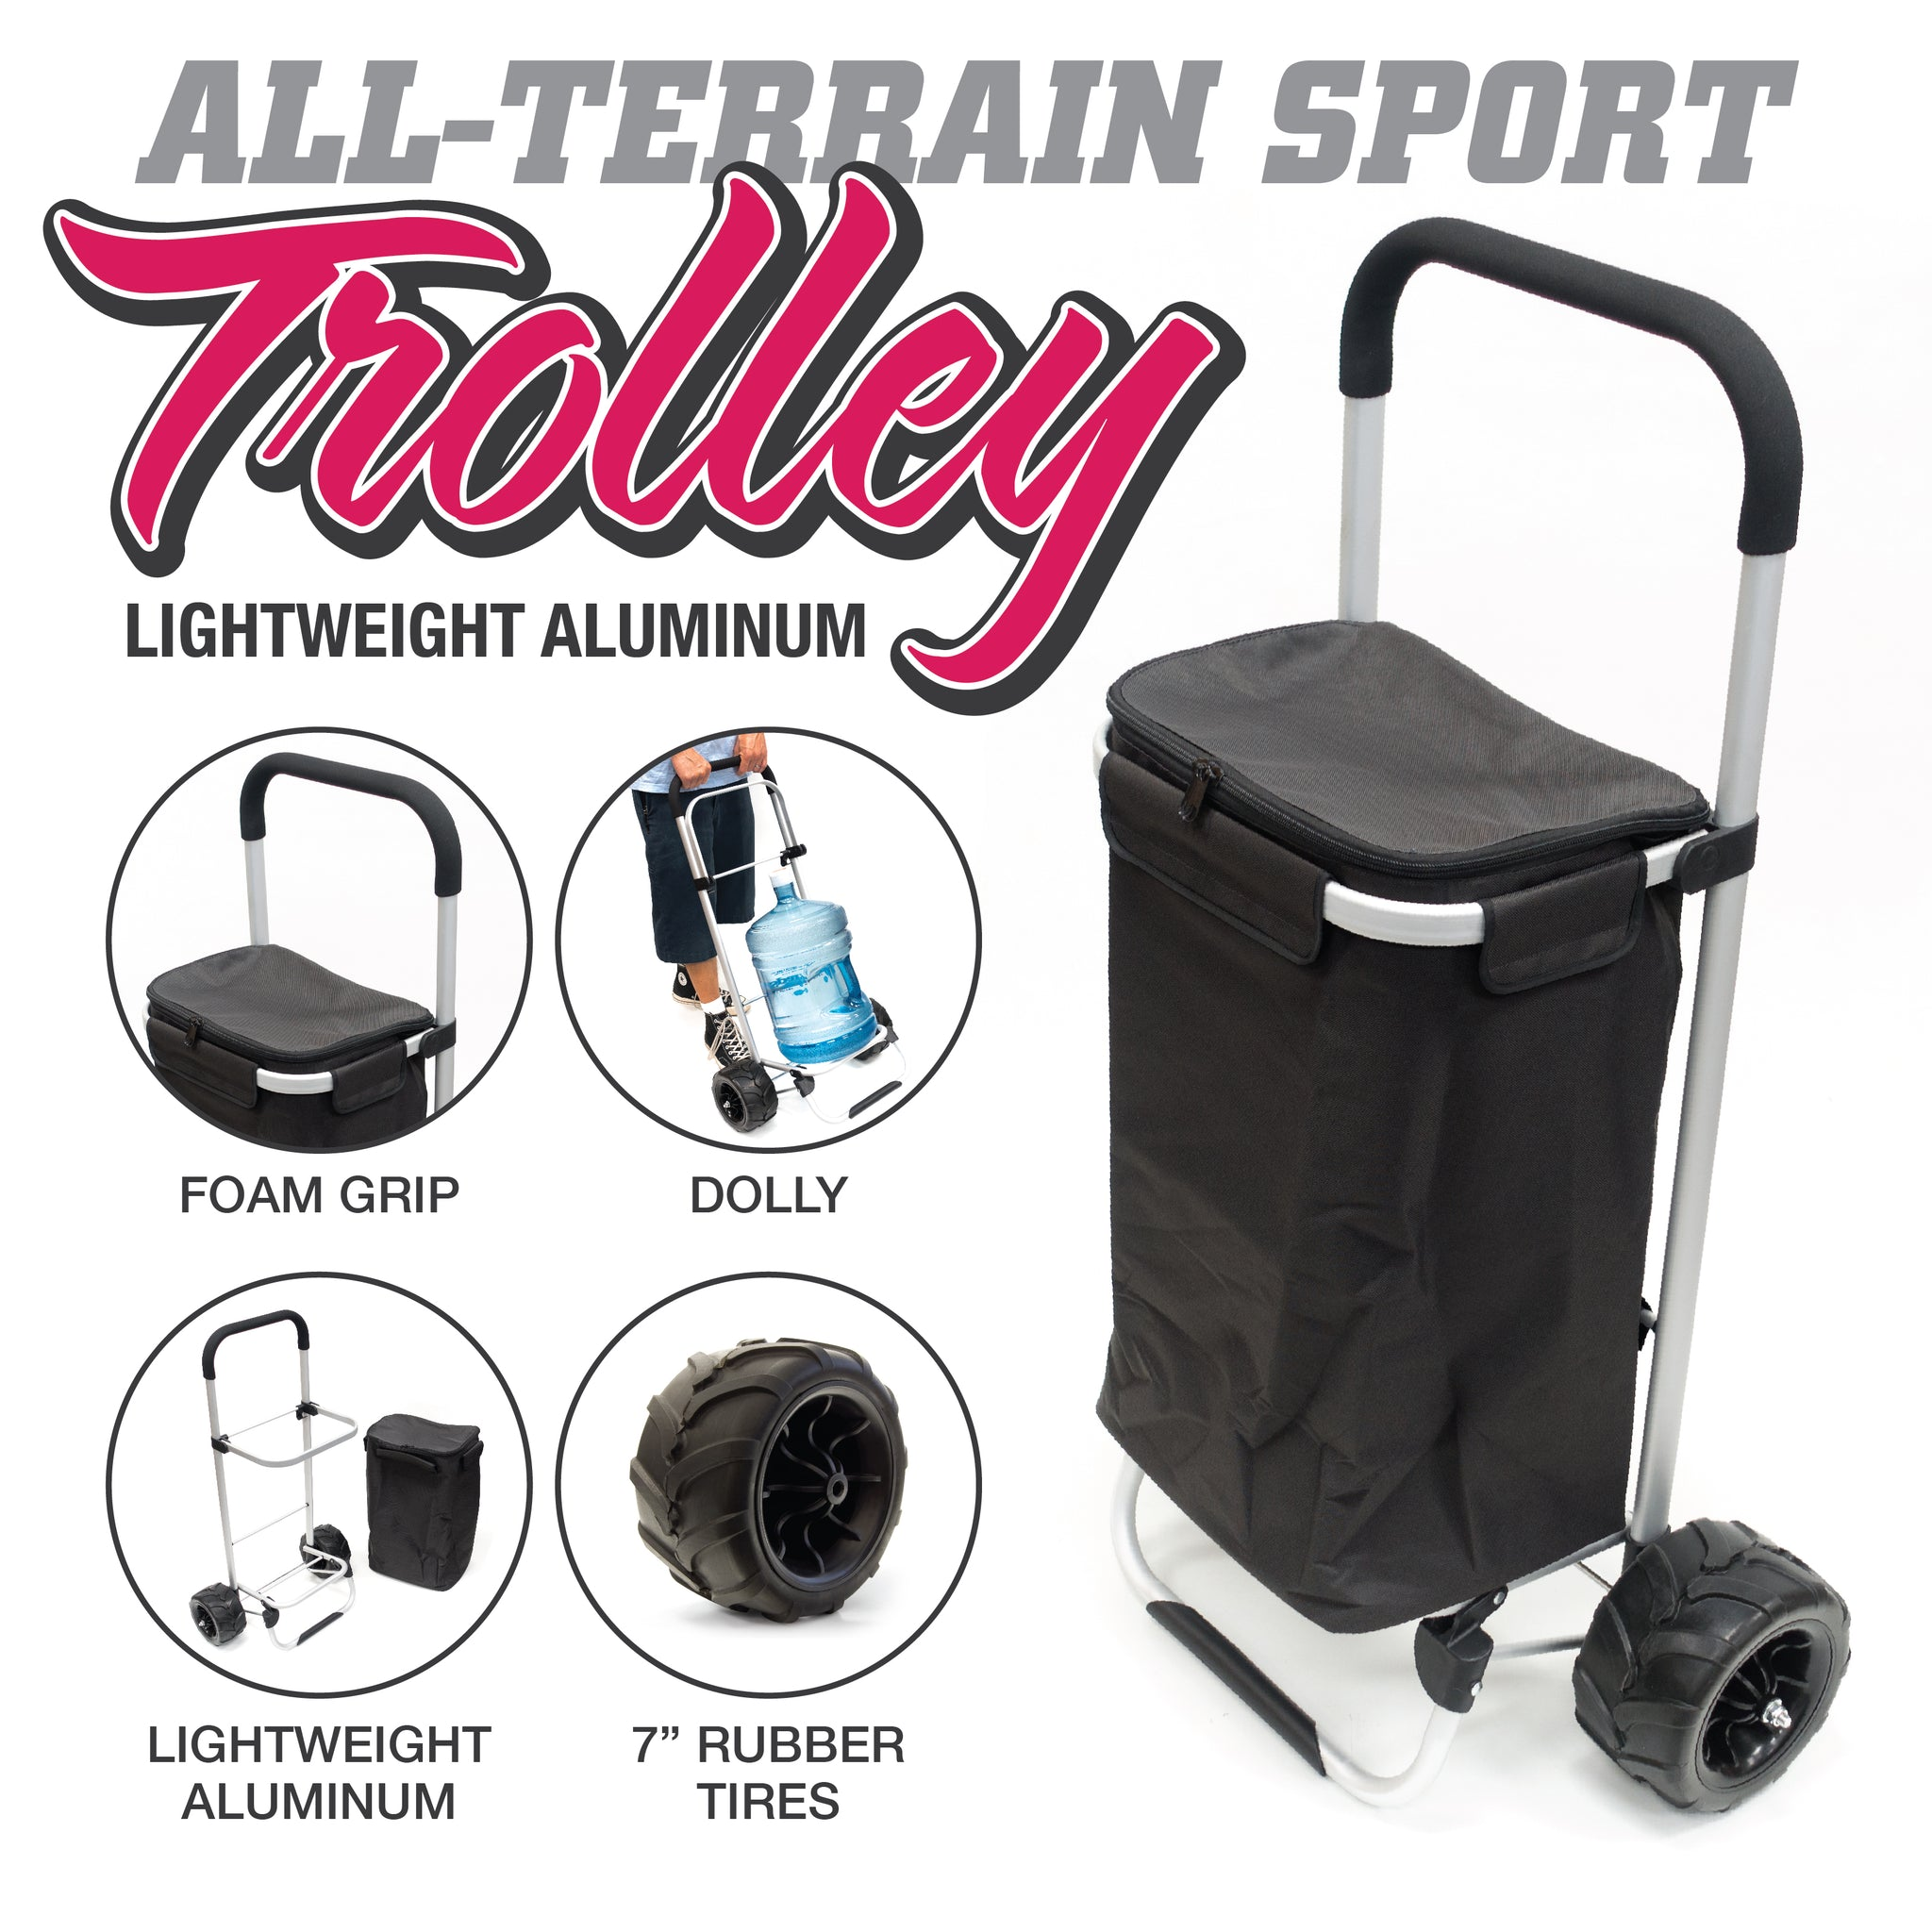 All-Terrain Folding Aluminum Trolley with Removable Zip-Top Bag Black Features 890200